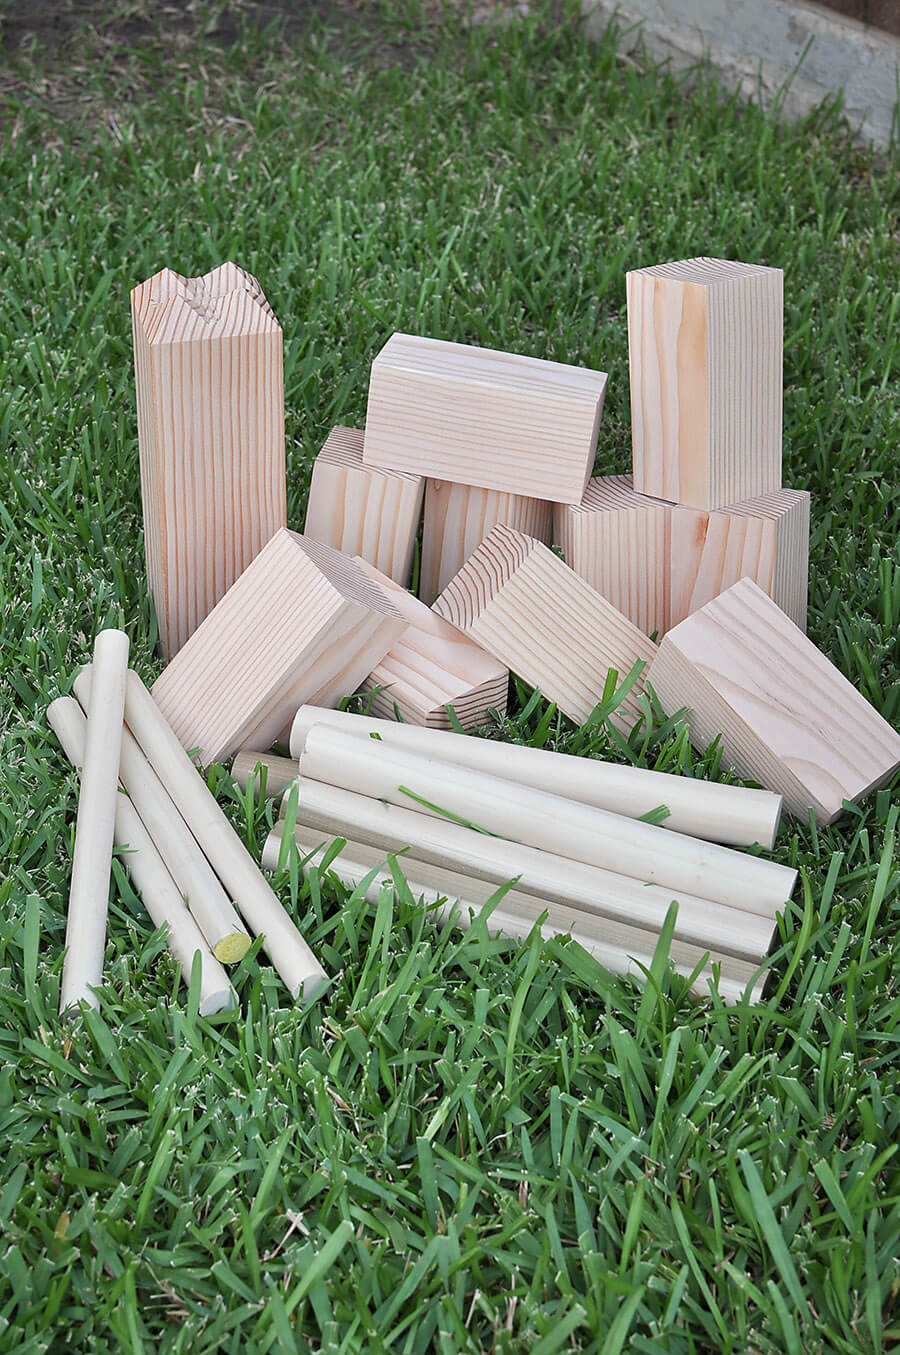 Make Your Own Kubb Lawn Game